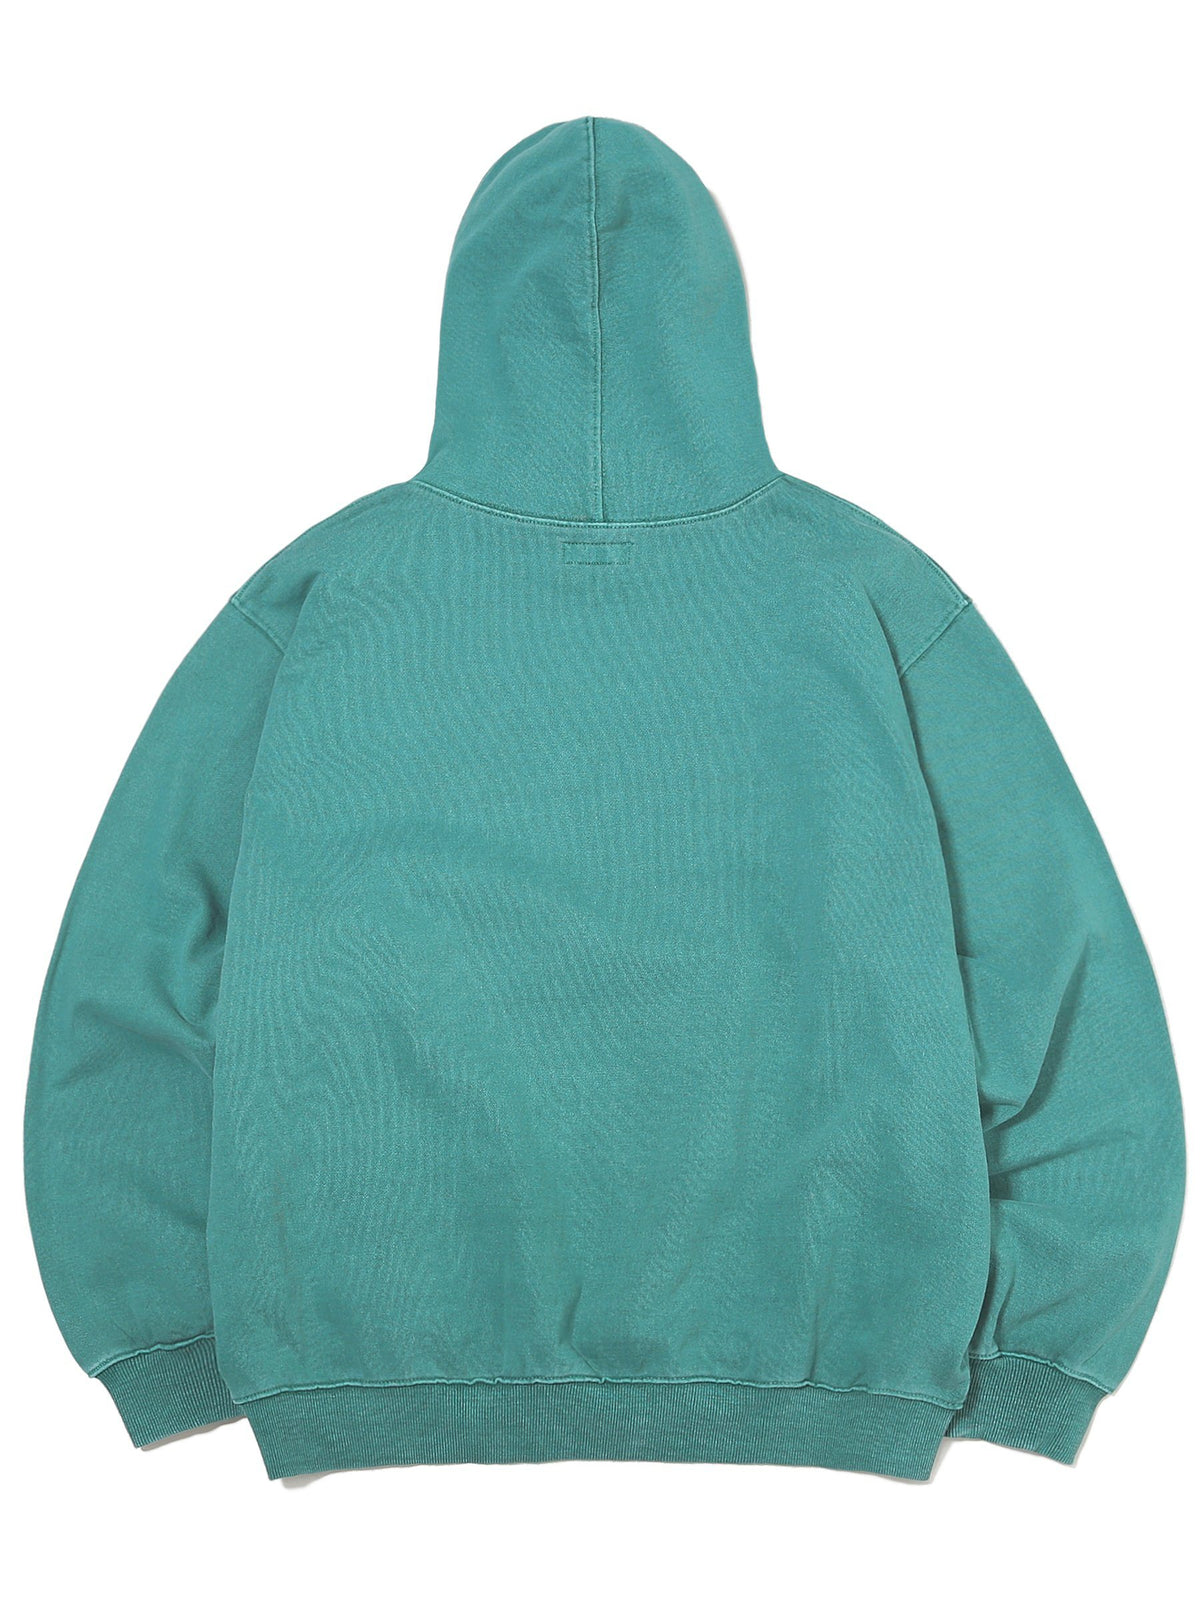 ISW Hooded Sweatshirt - thisisneverthat